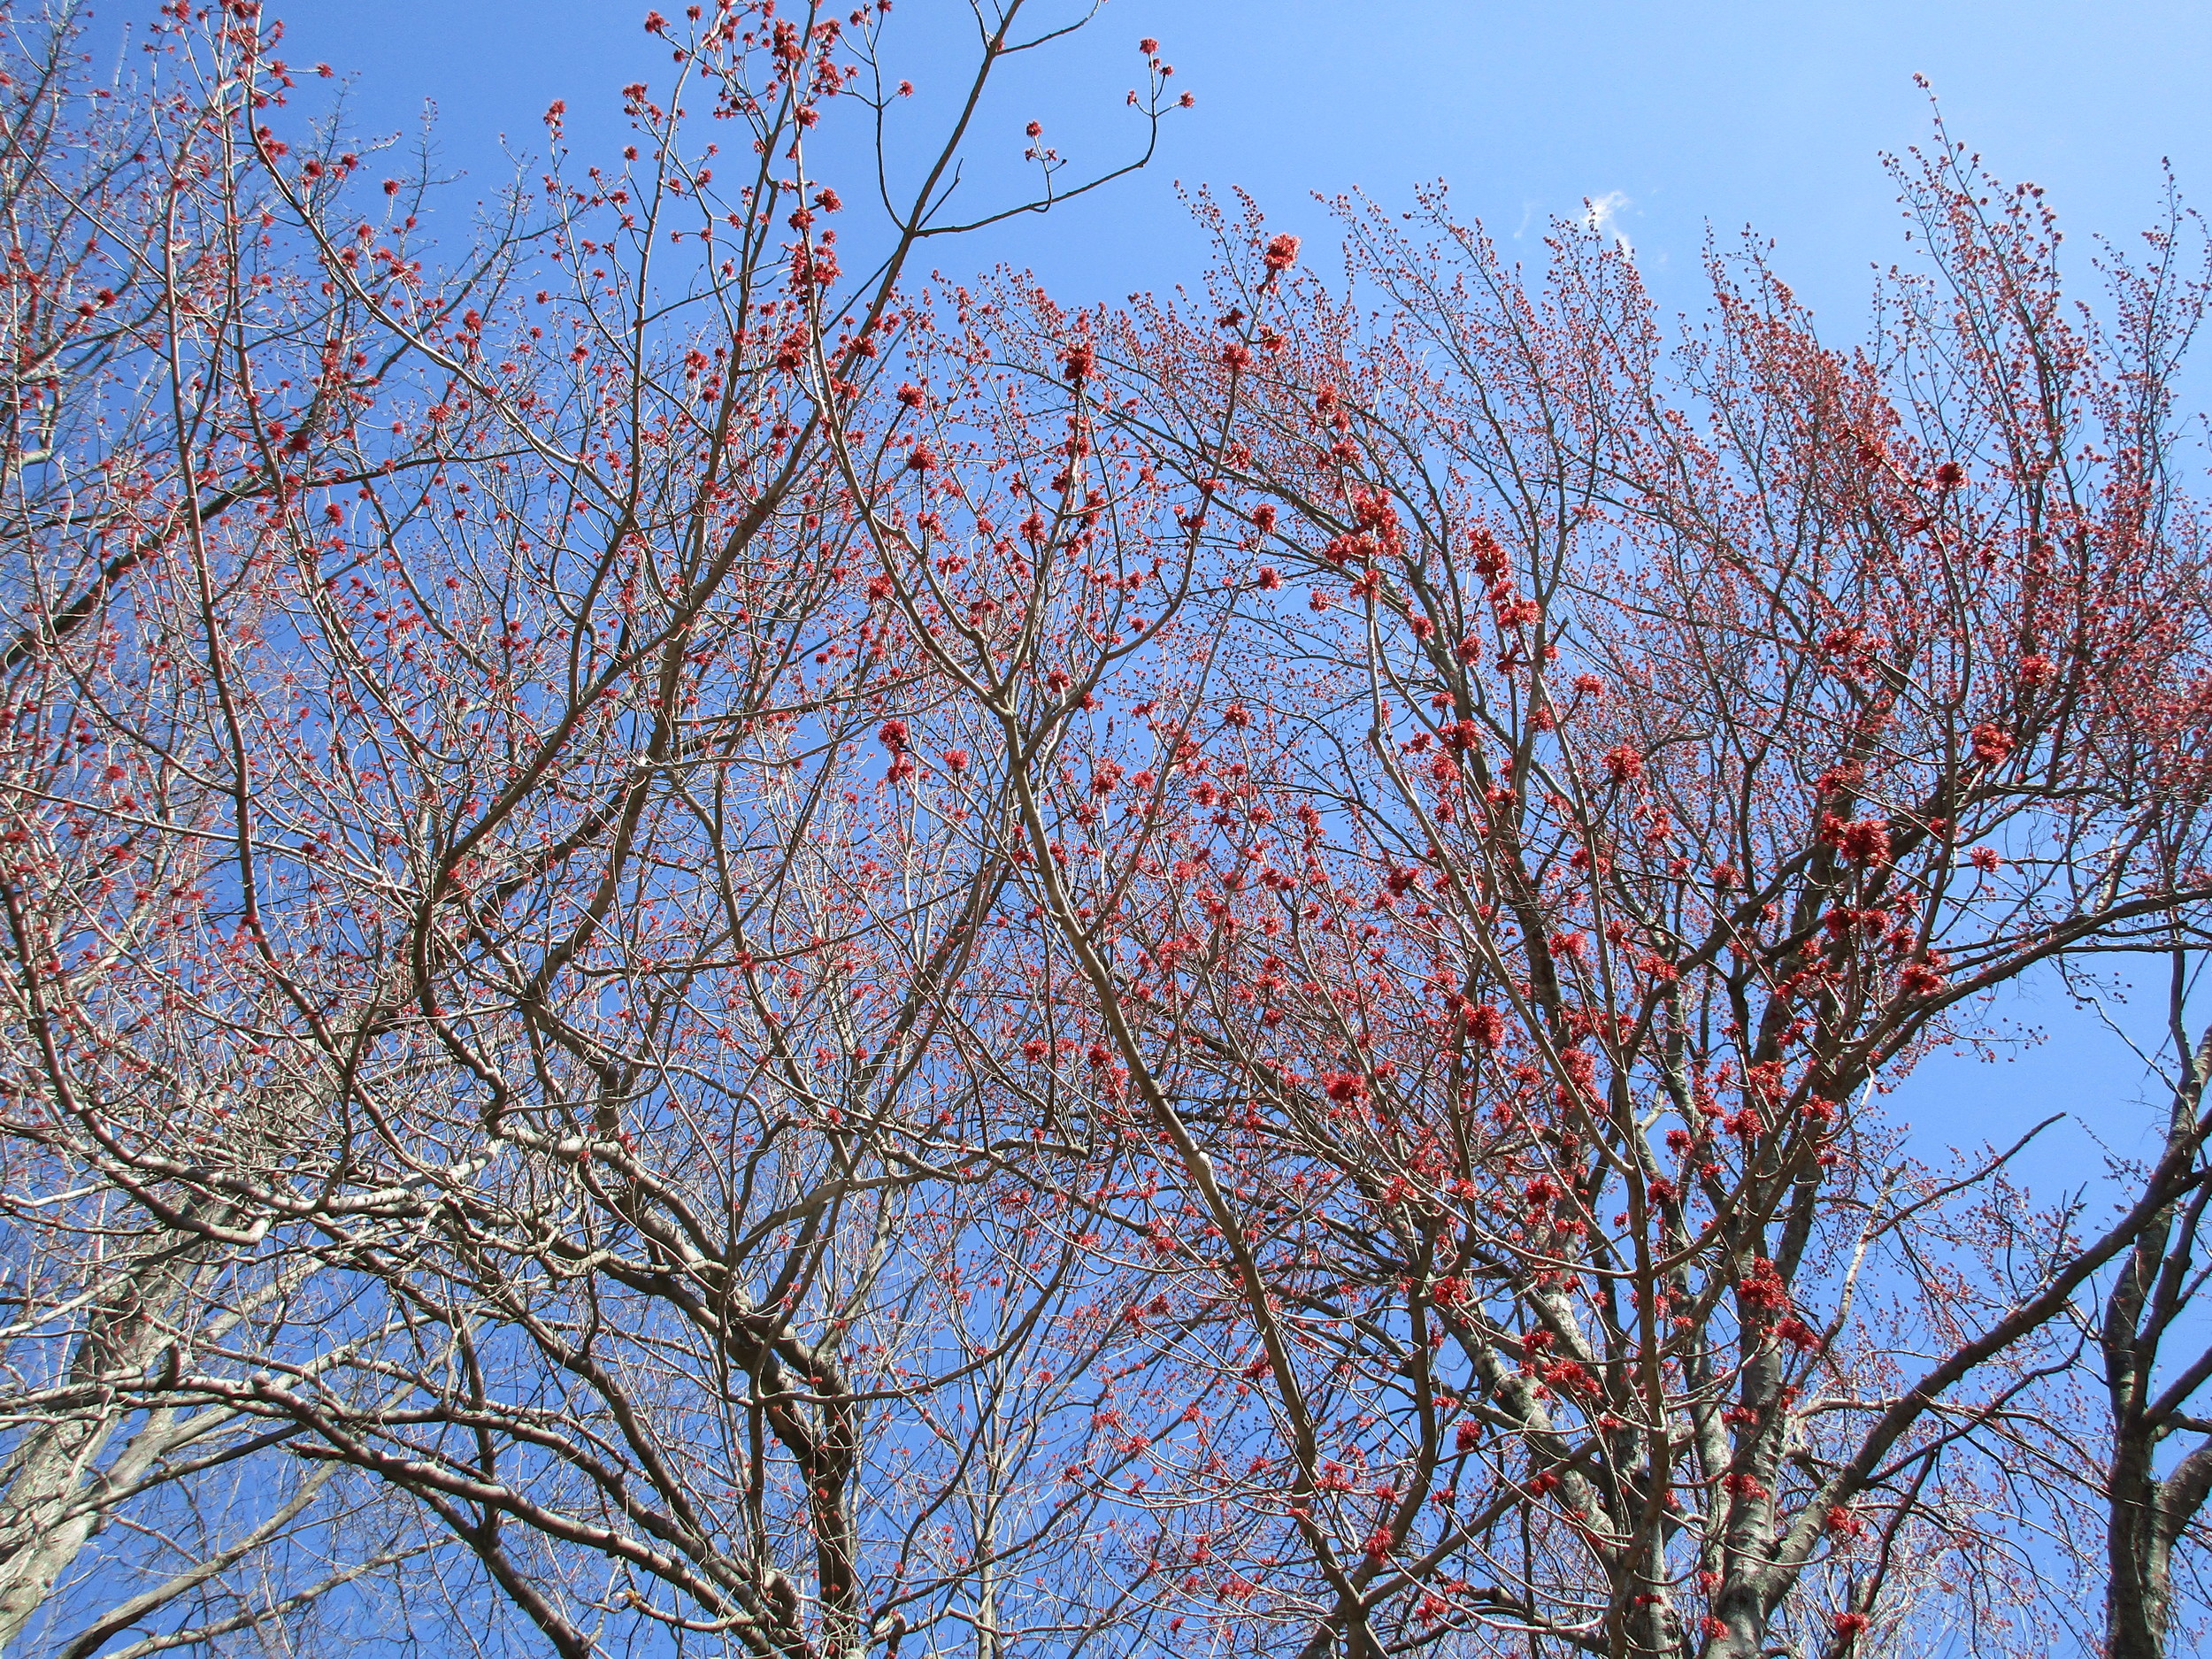 March 29th.  Red maple flowers are an important source of pollen for bees.